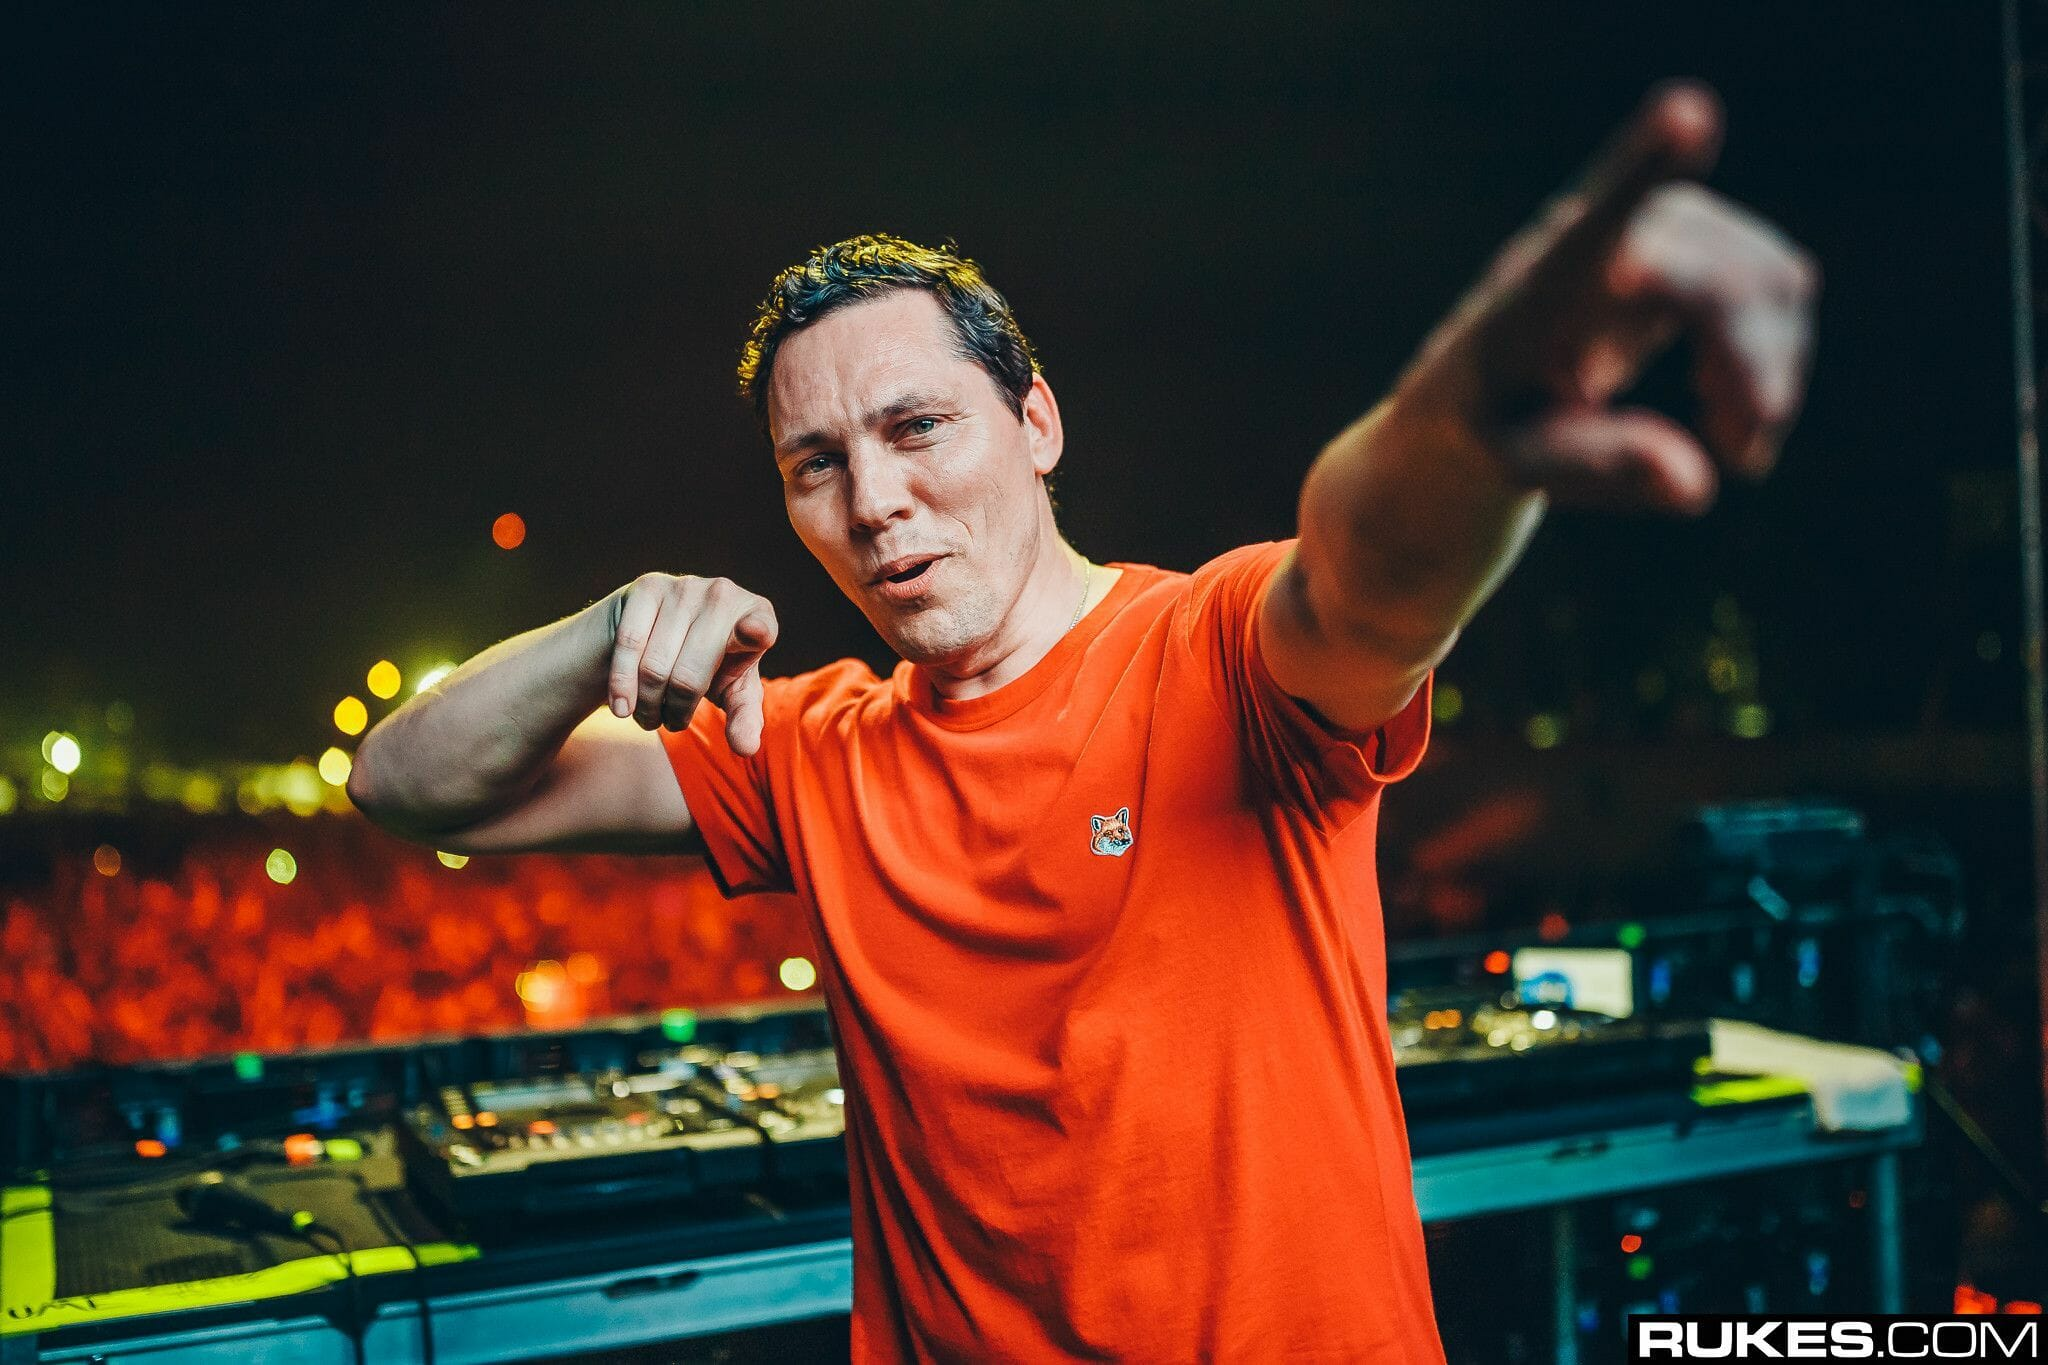 Tiësto and Vintage Culture convene for 'Coffee (Give Me Something)'5BE235EB EE83 4804 8D7B A92B093C9660